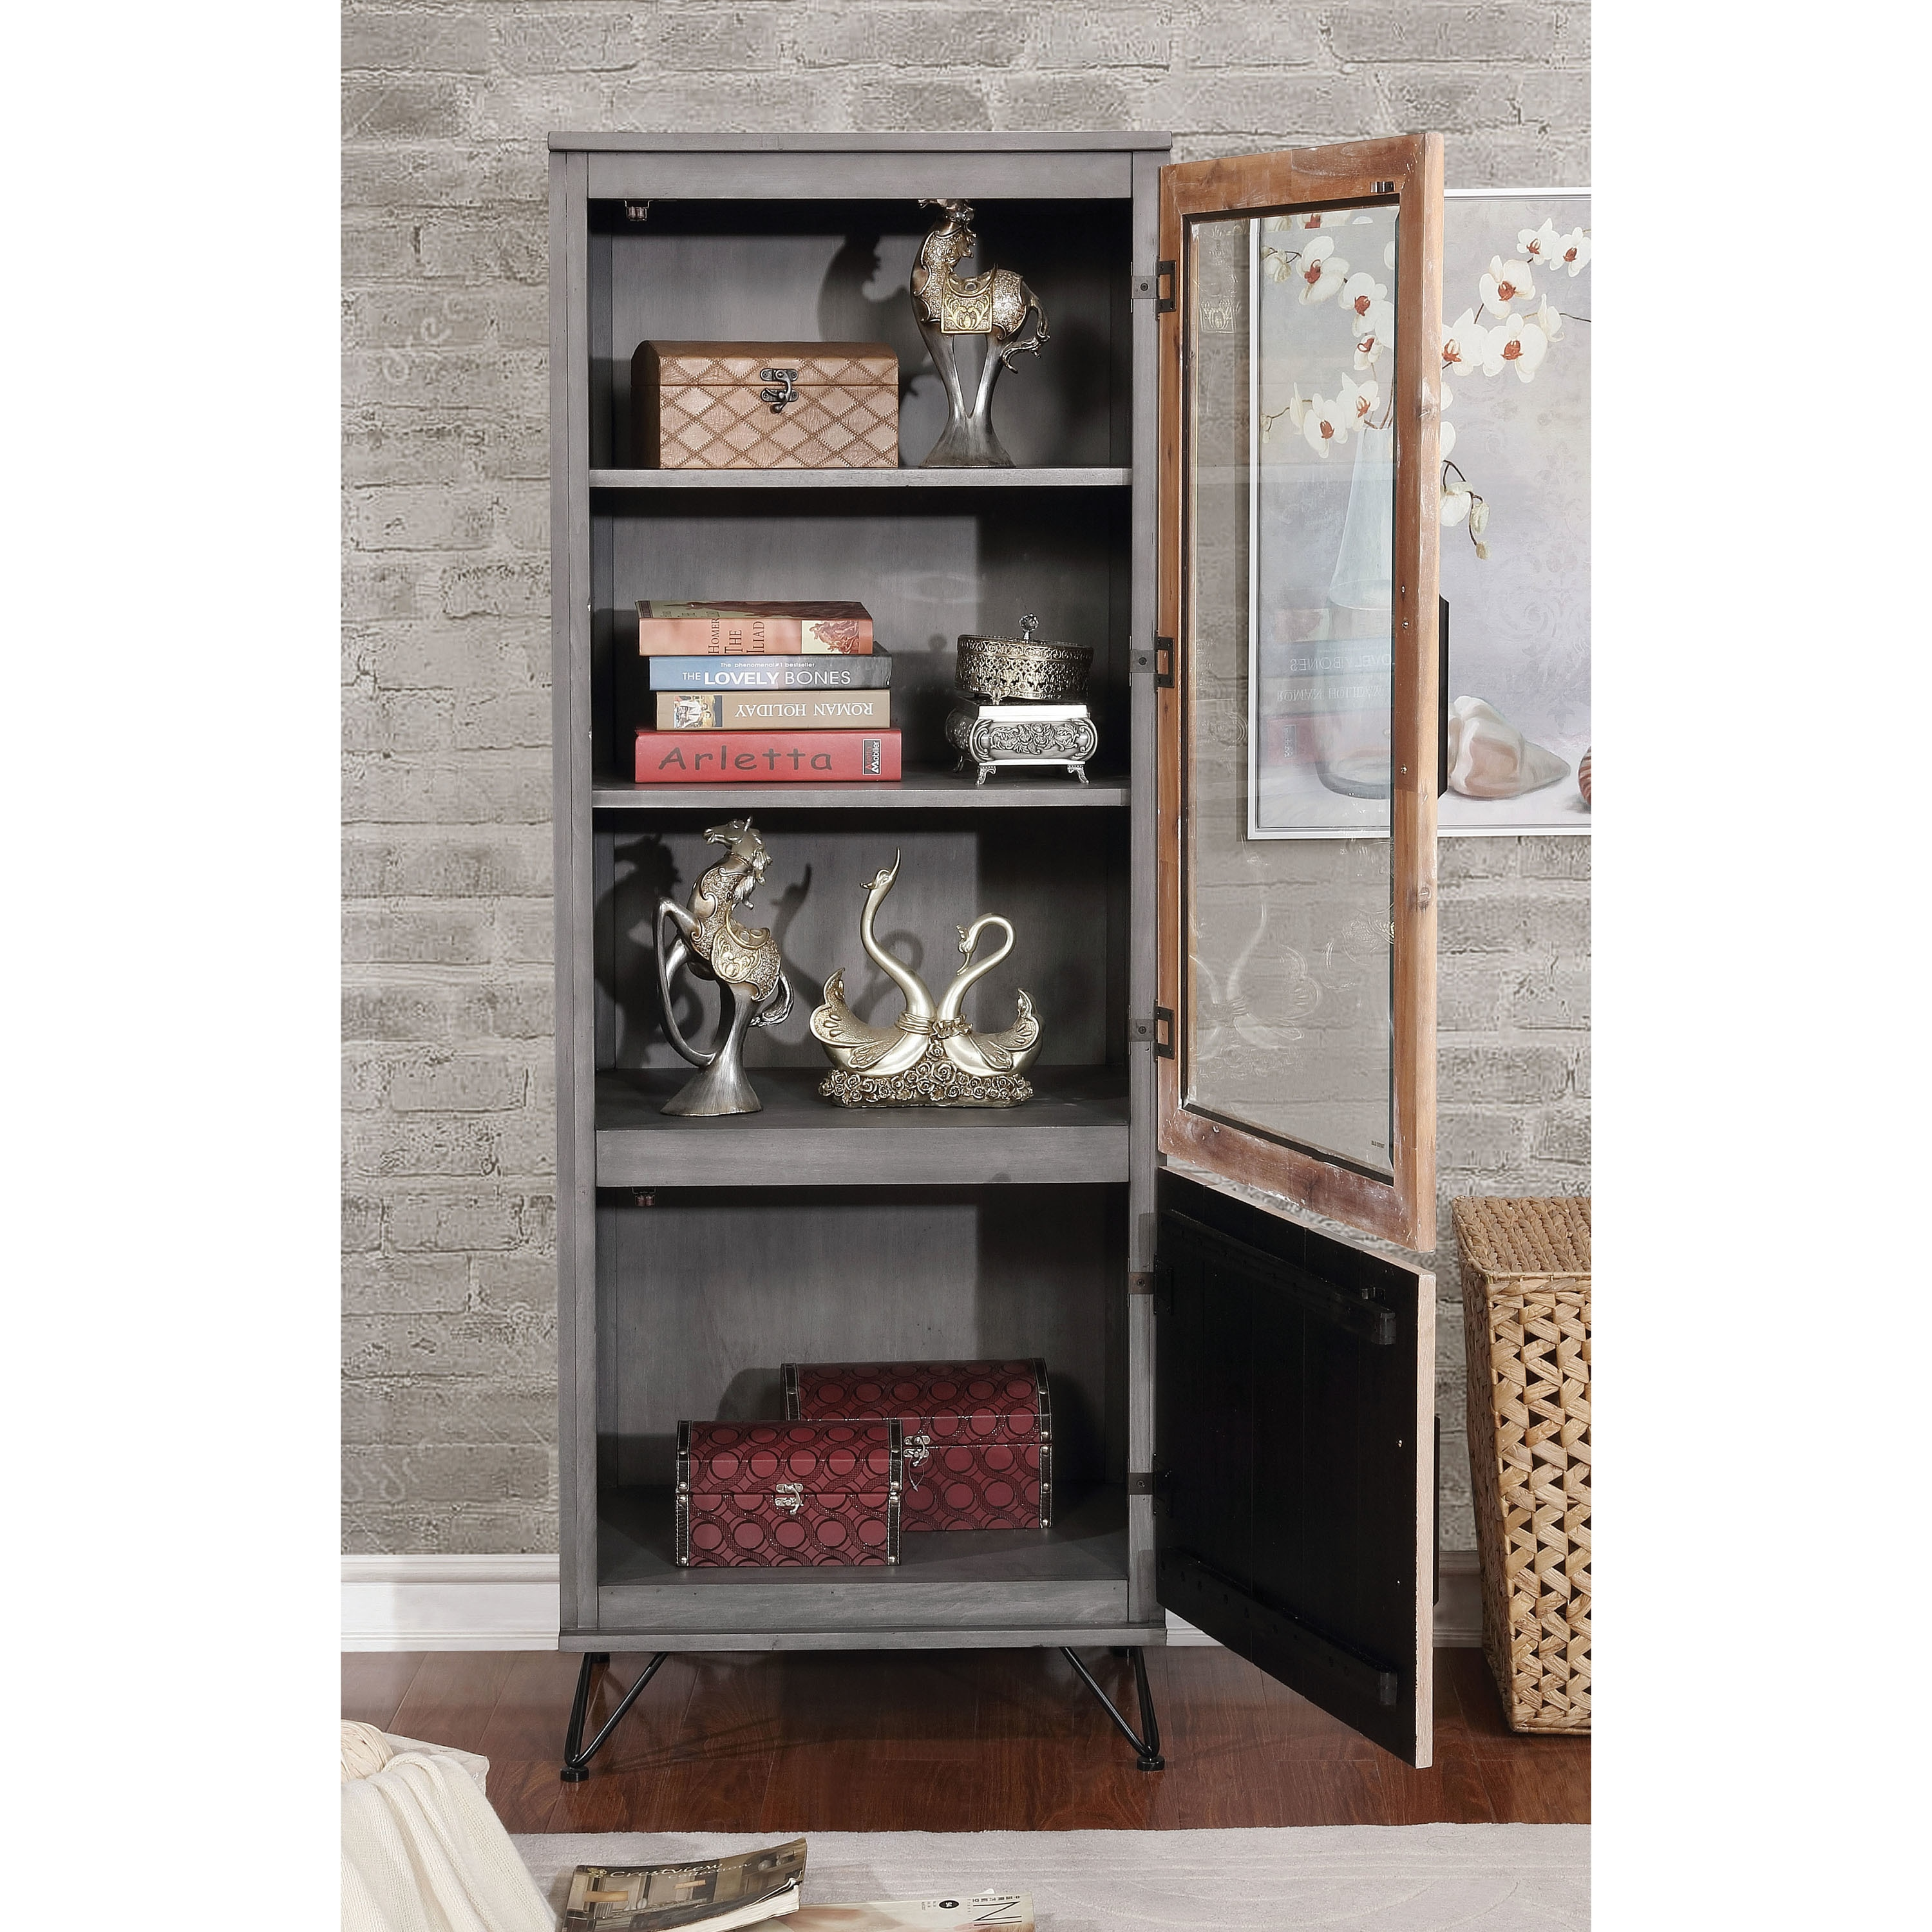 Furniture Of America Freddie Contemporary Sawblade Style 2 Door Pier  Cabinet   Free Shipping Today   Overstock   25701529